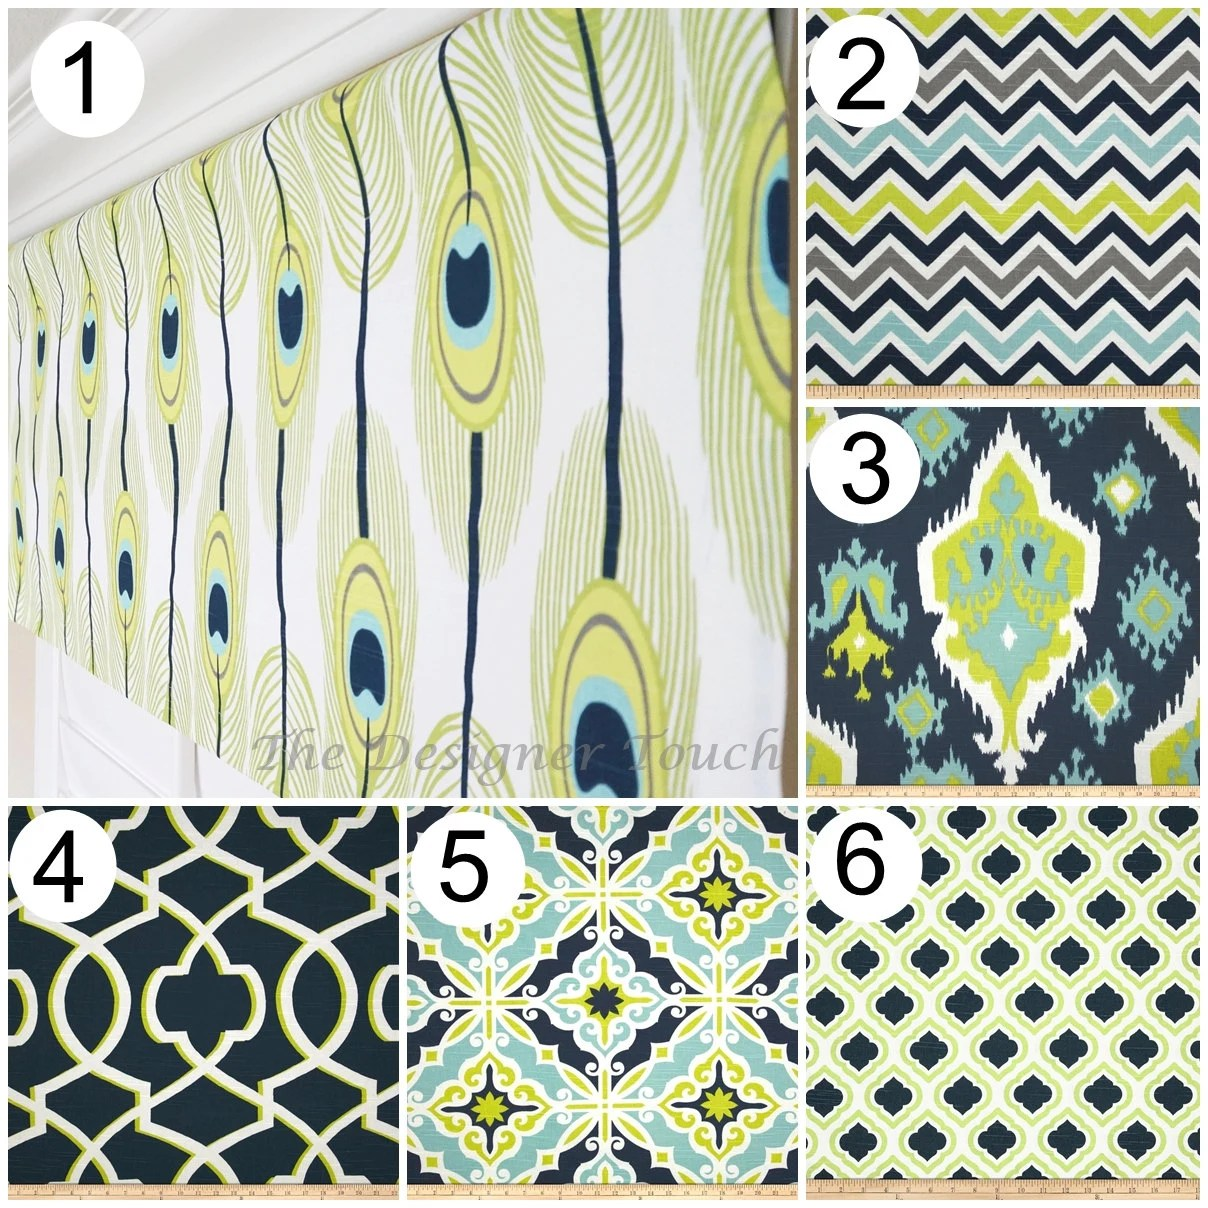 Peacock Feather Valance Trellis Valance Navy By